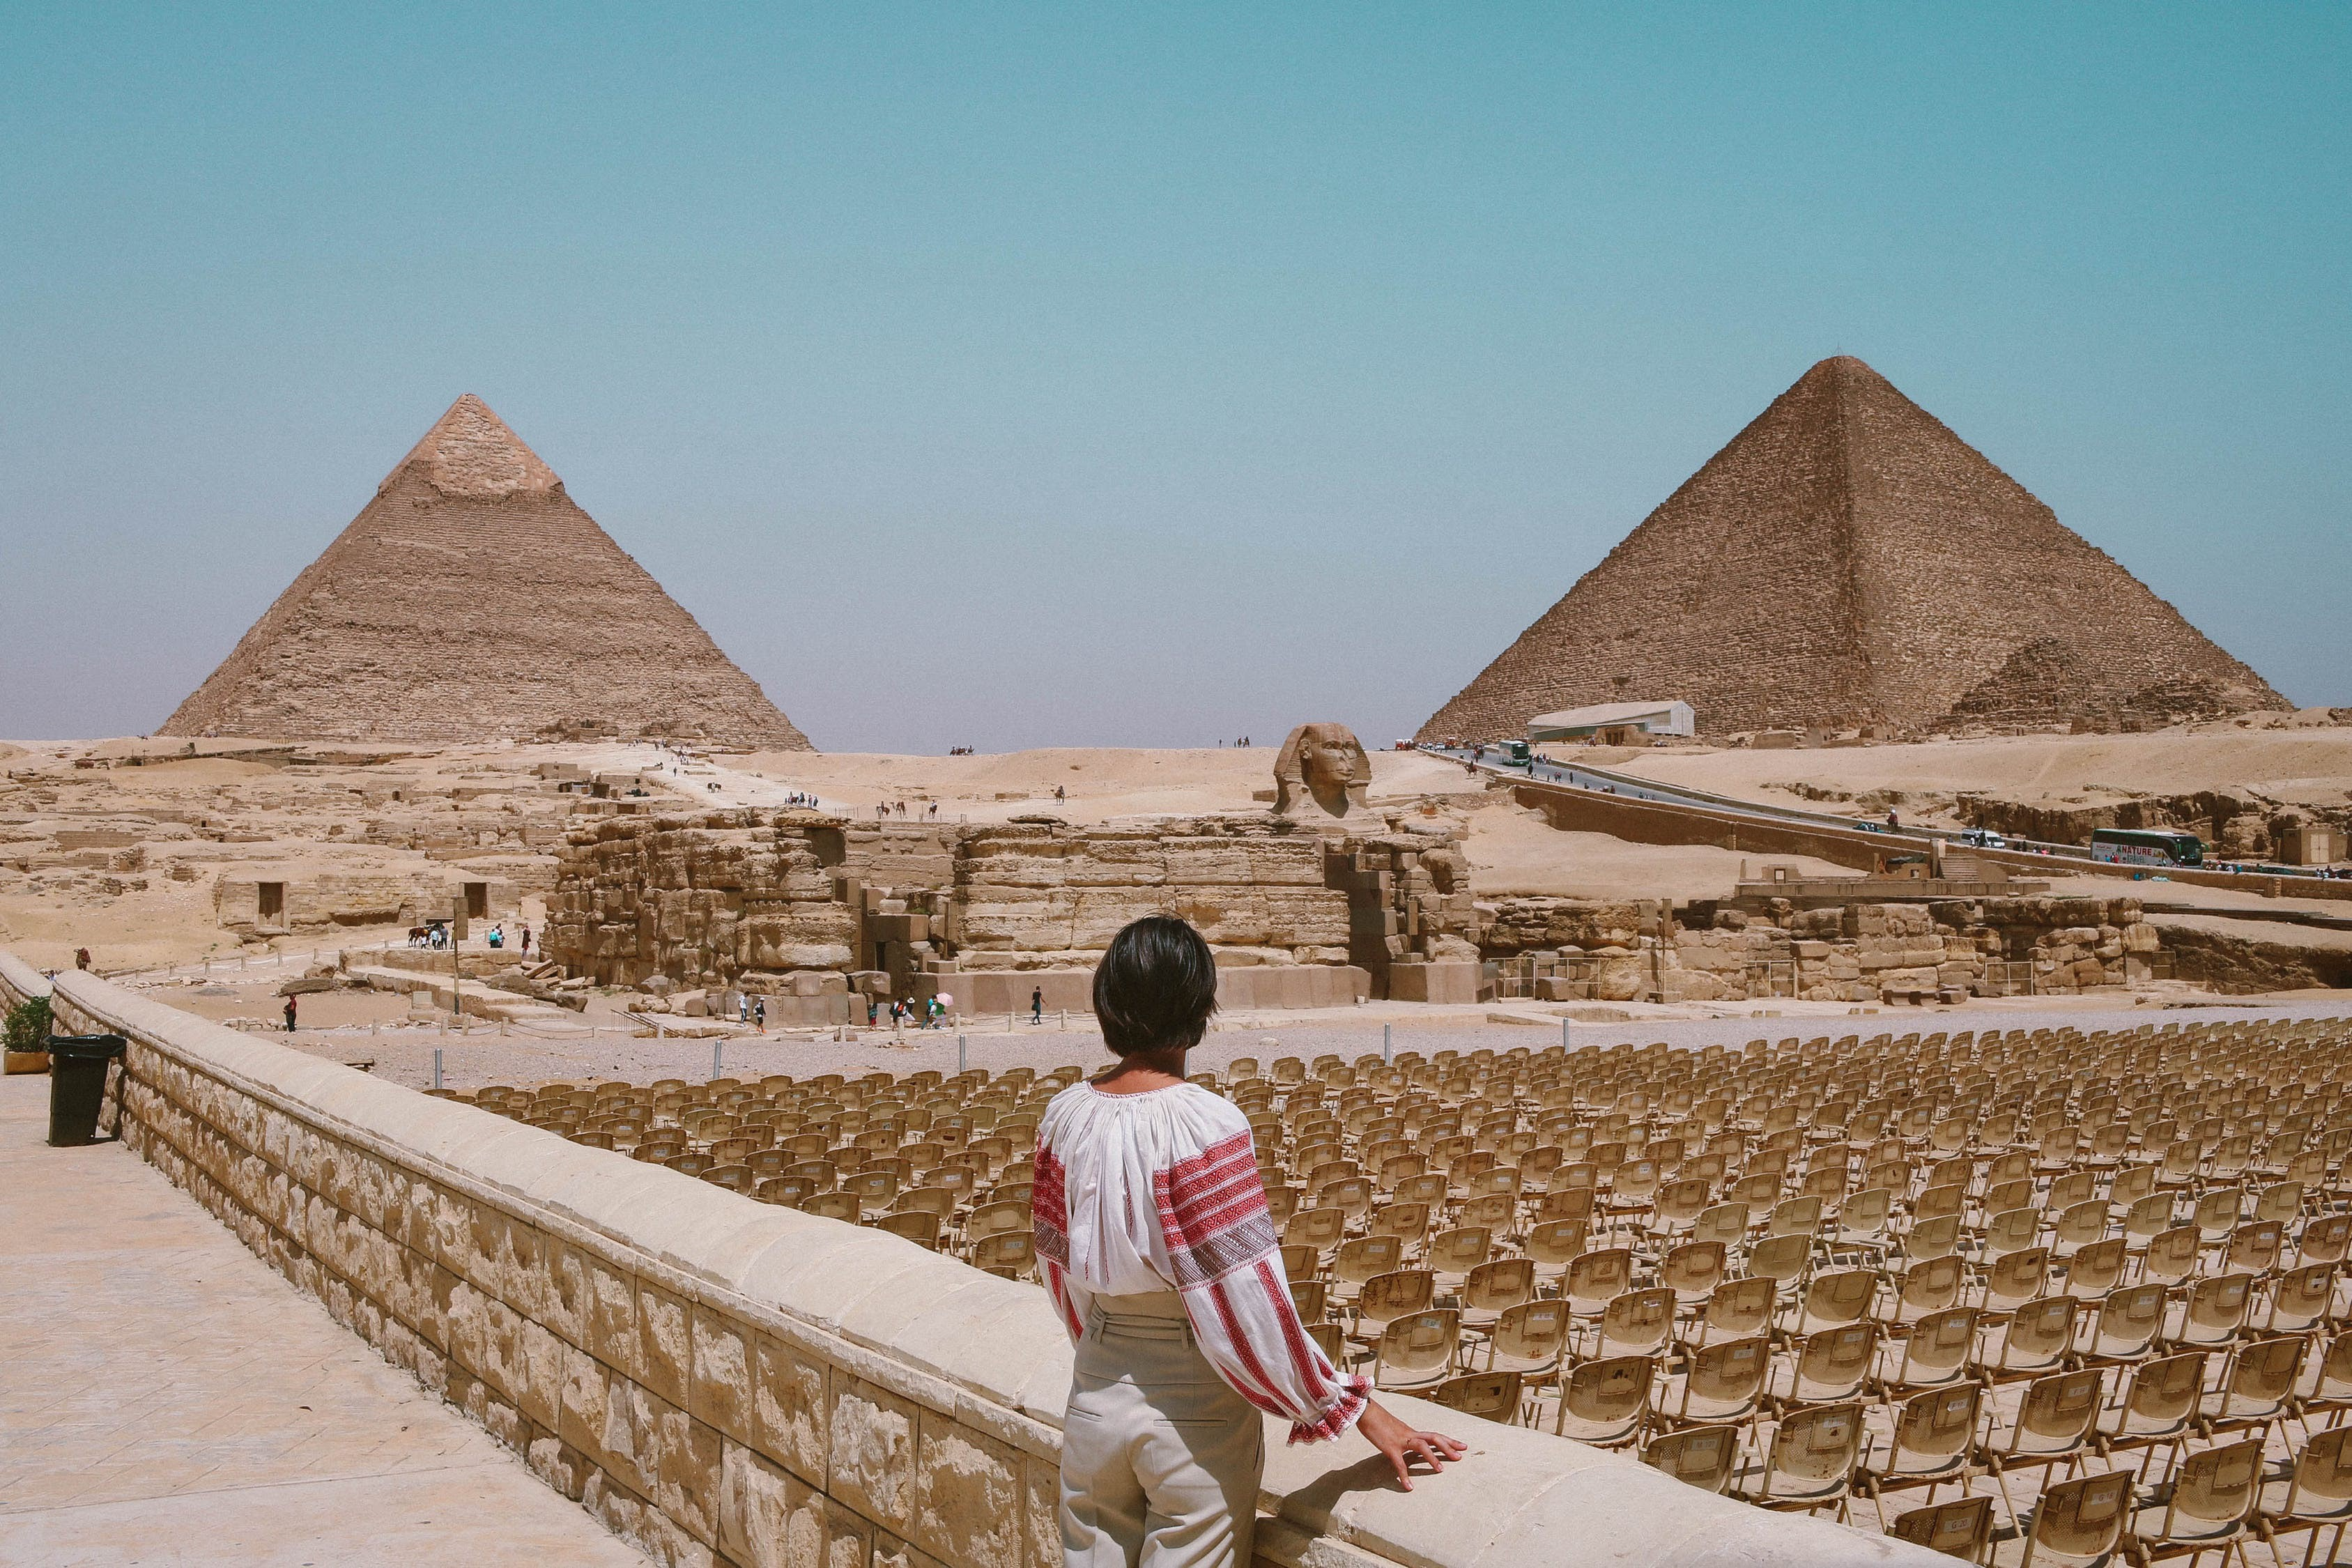 Traveler standing in front of pyramids in Egypt